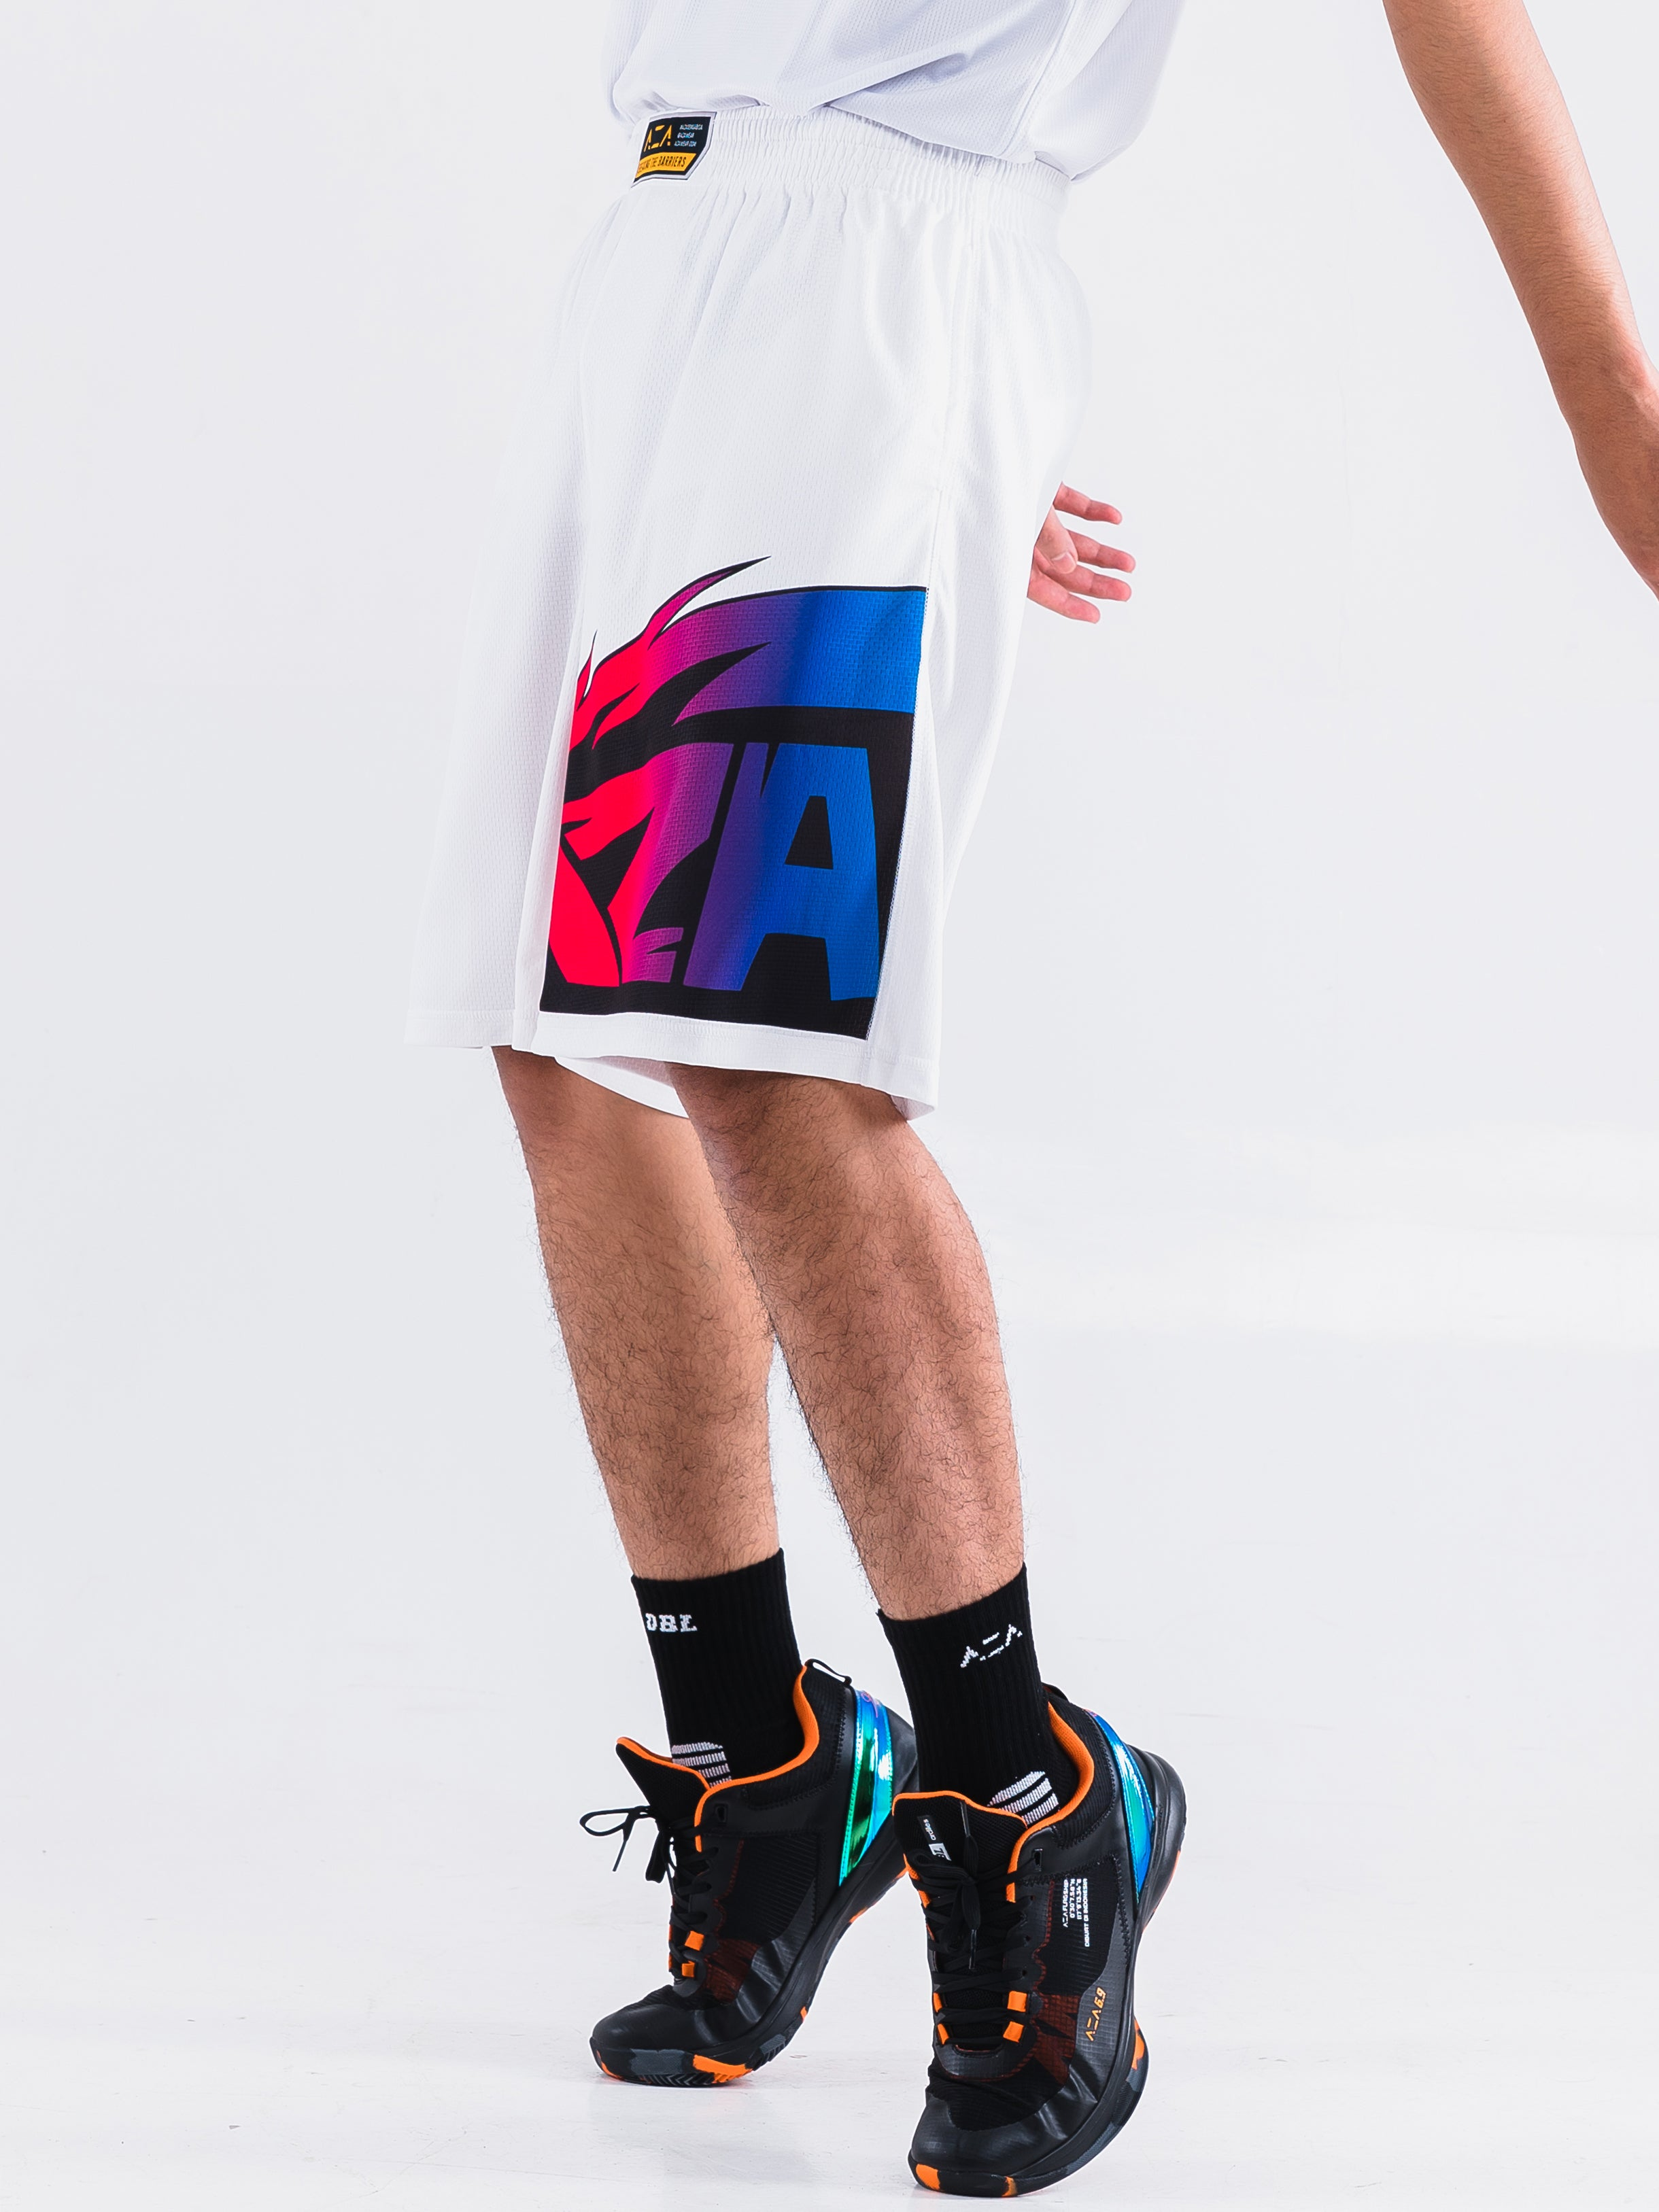 Aza Manga Strike Short - White/Purple